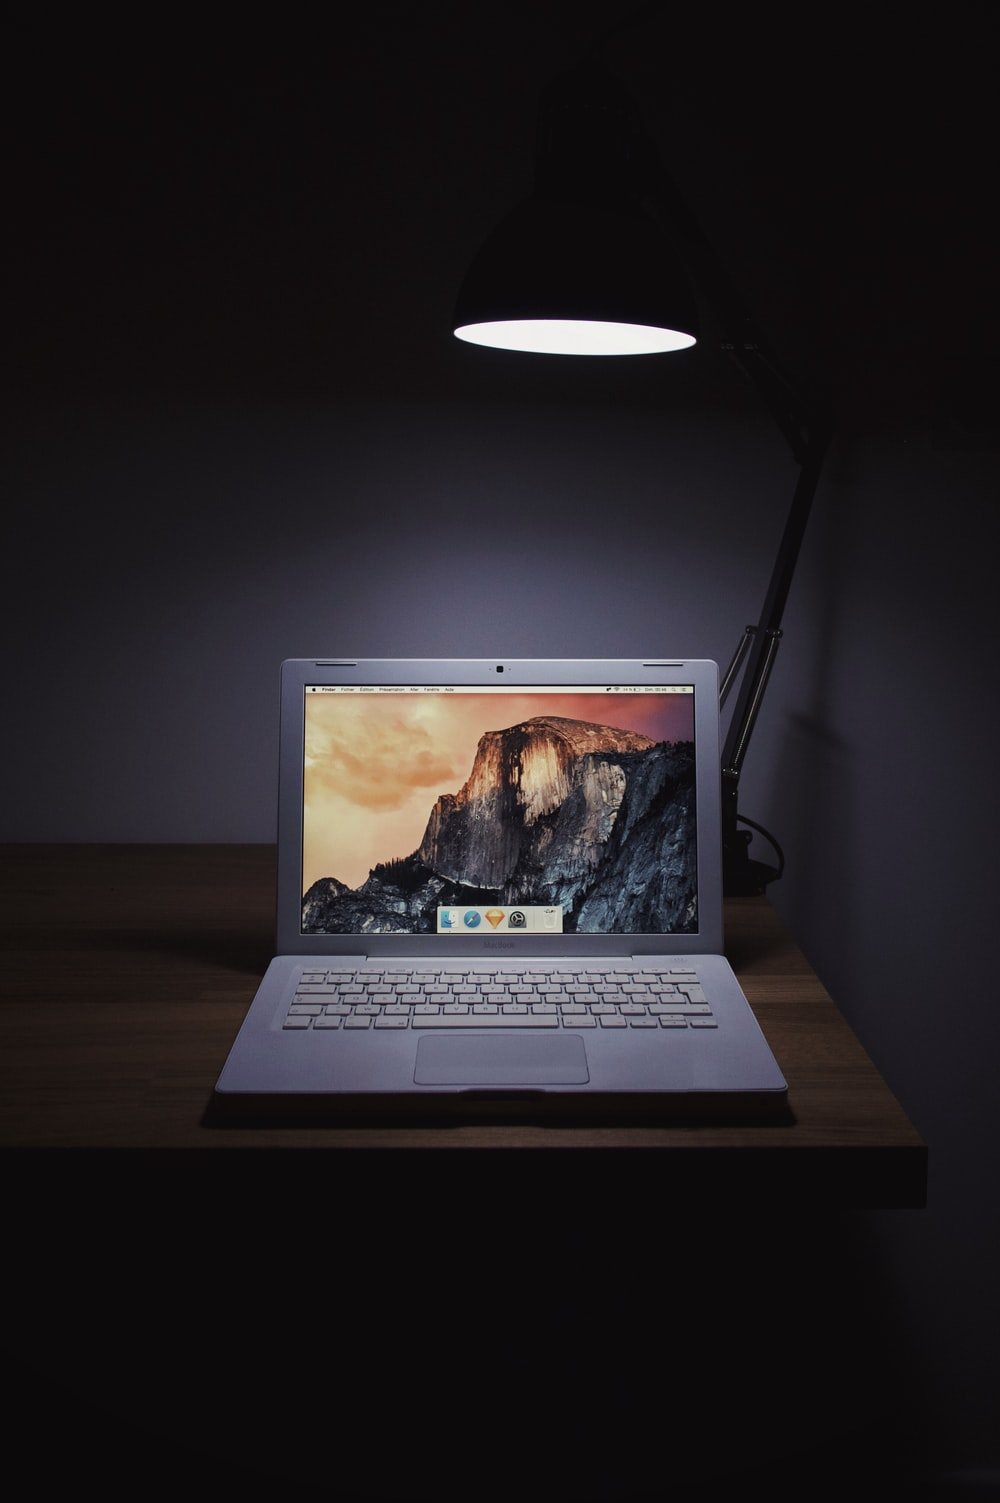 MacBook Air on wooden surface